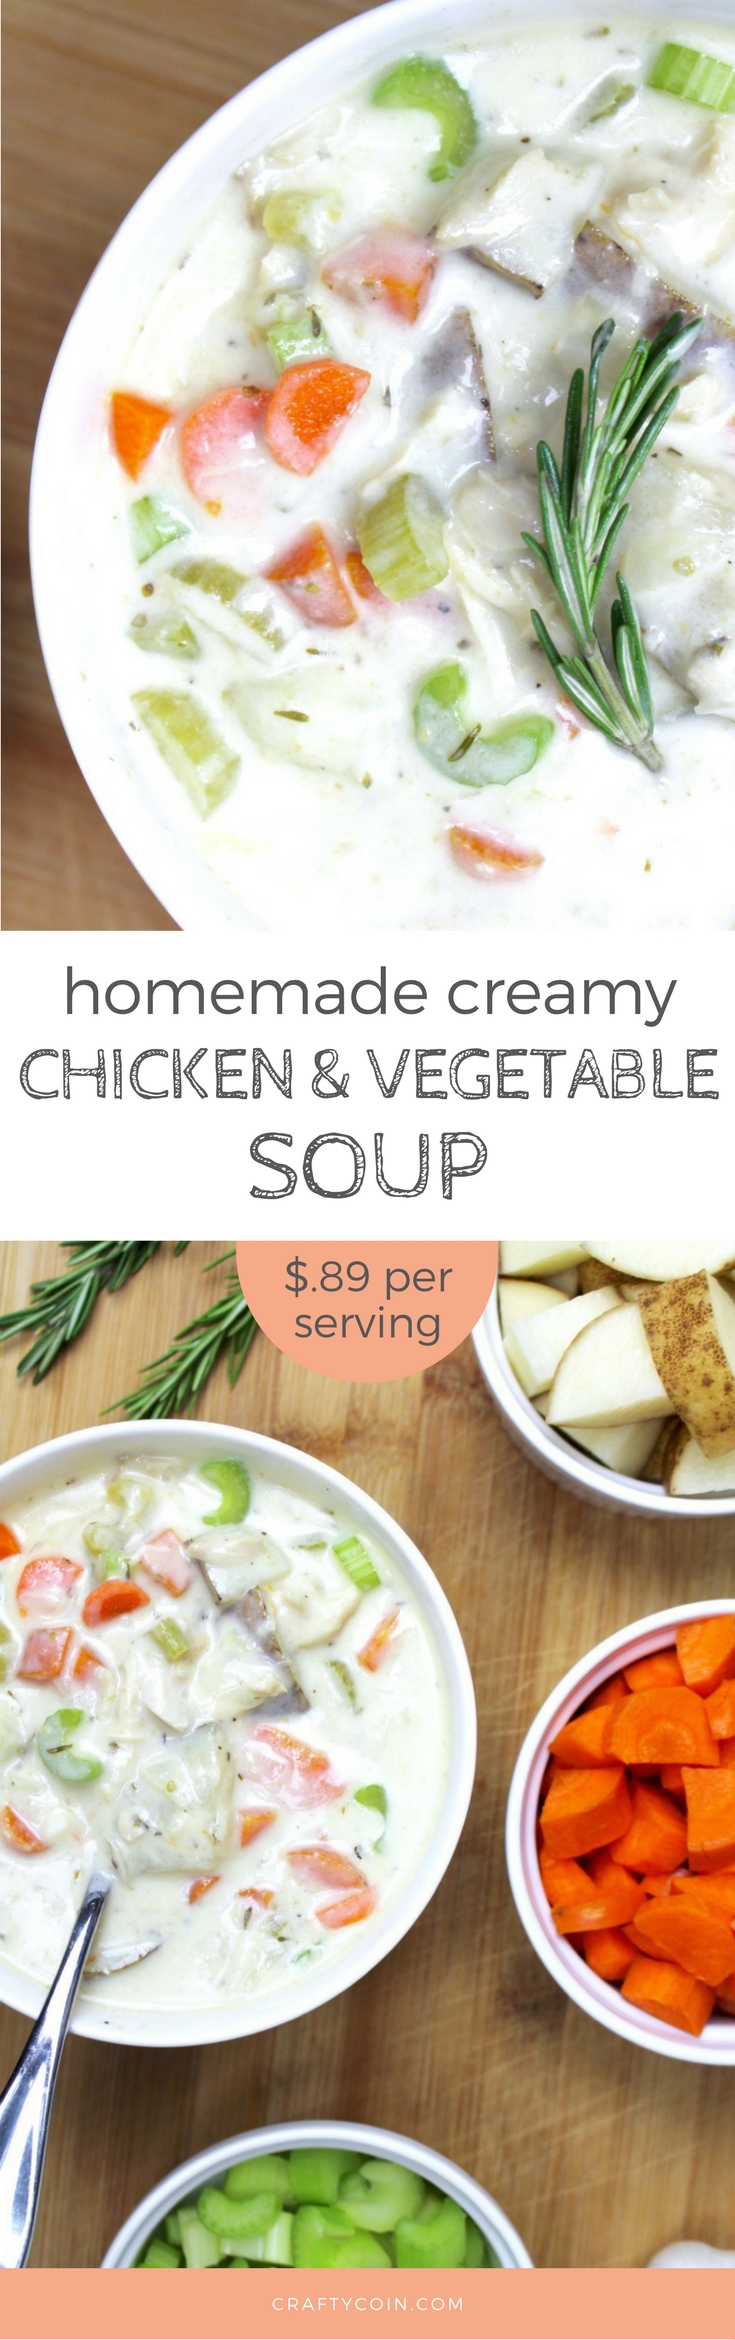 Homemade Cream of Chicken and Vegetable Soup